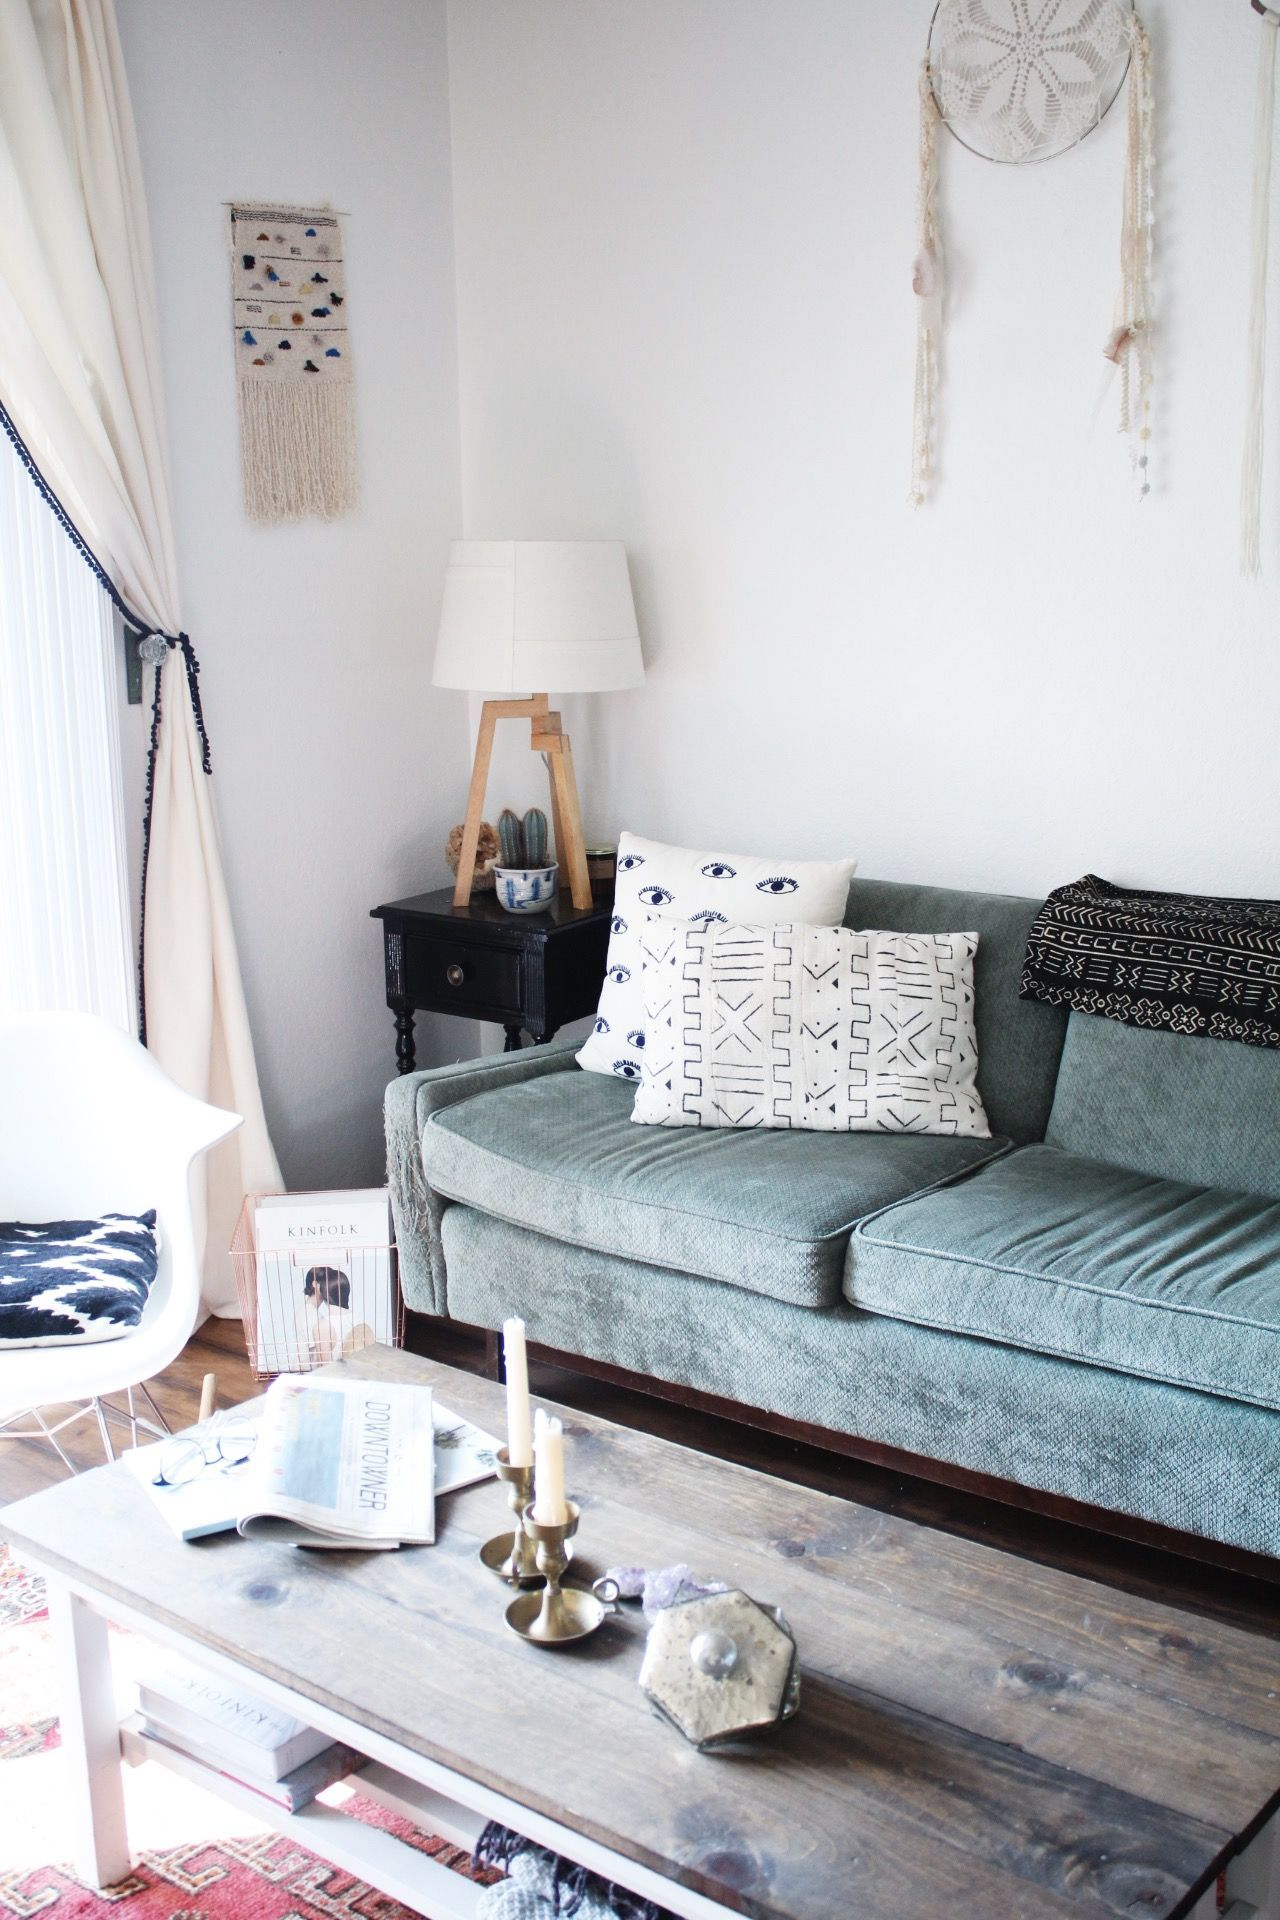 Uo Guide Decorating With Purpose #Modernlivingroomdecor